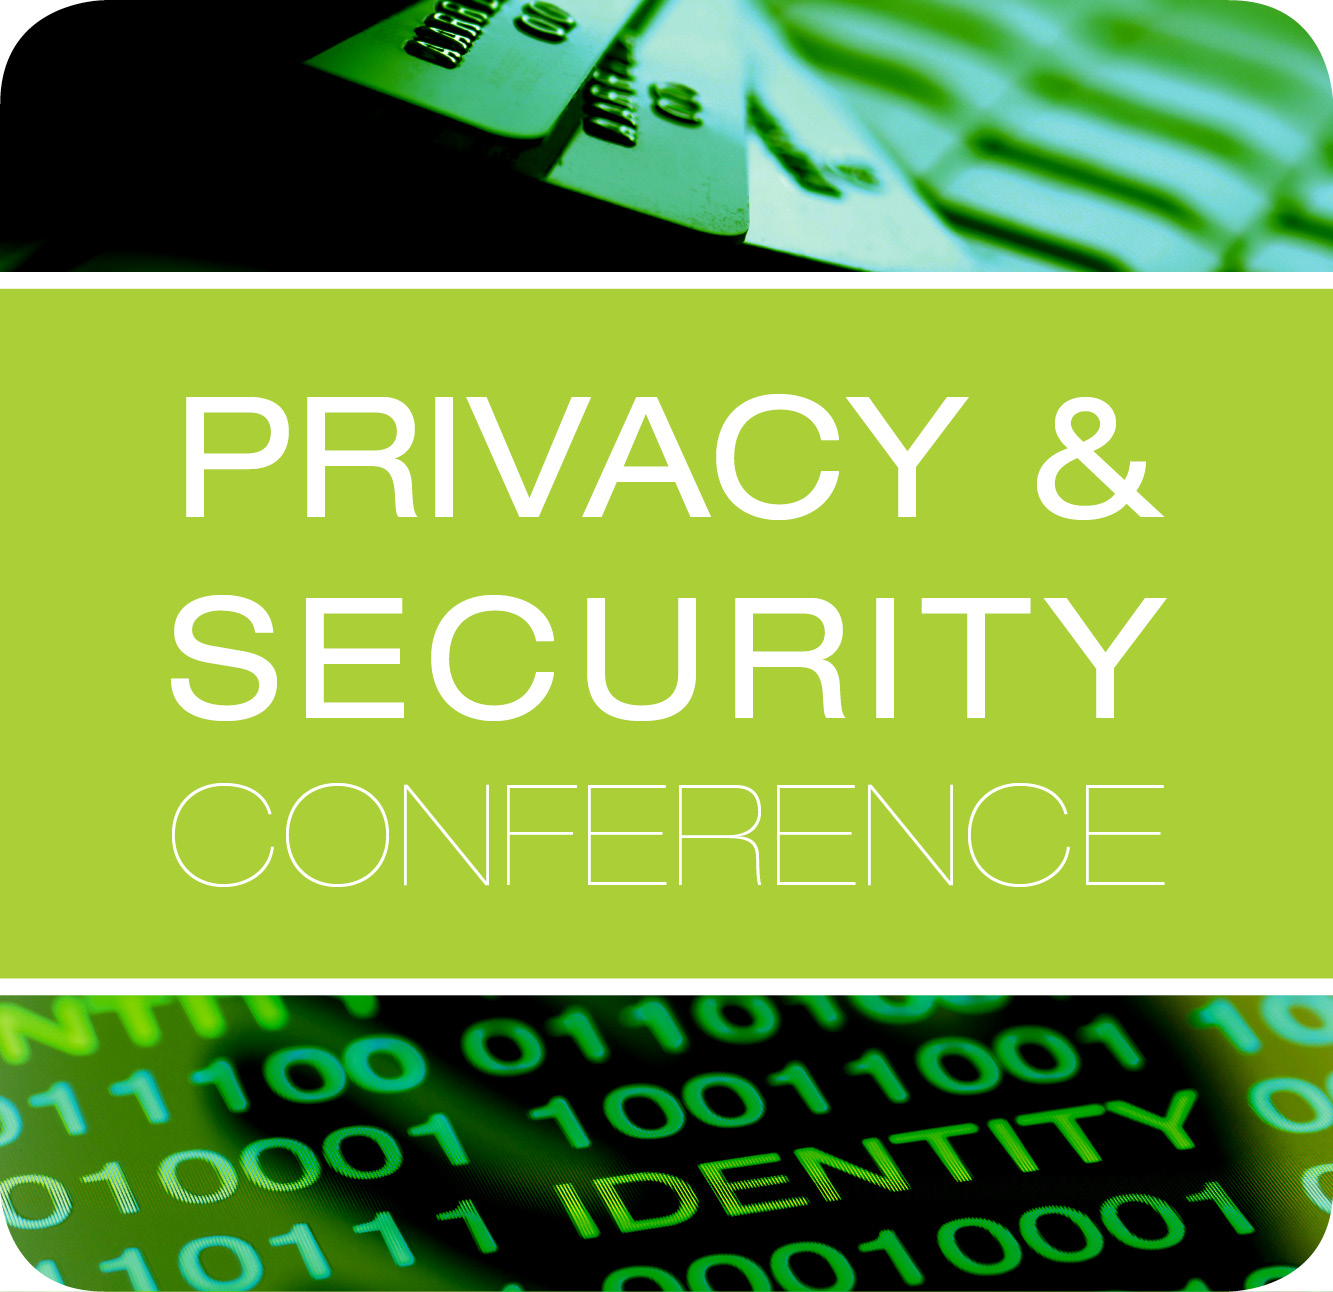 privacy-truly-matters-in-todays-online-world-2